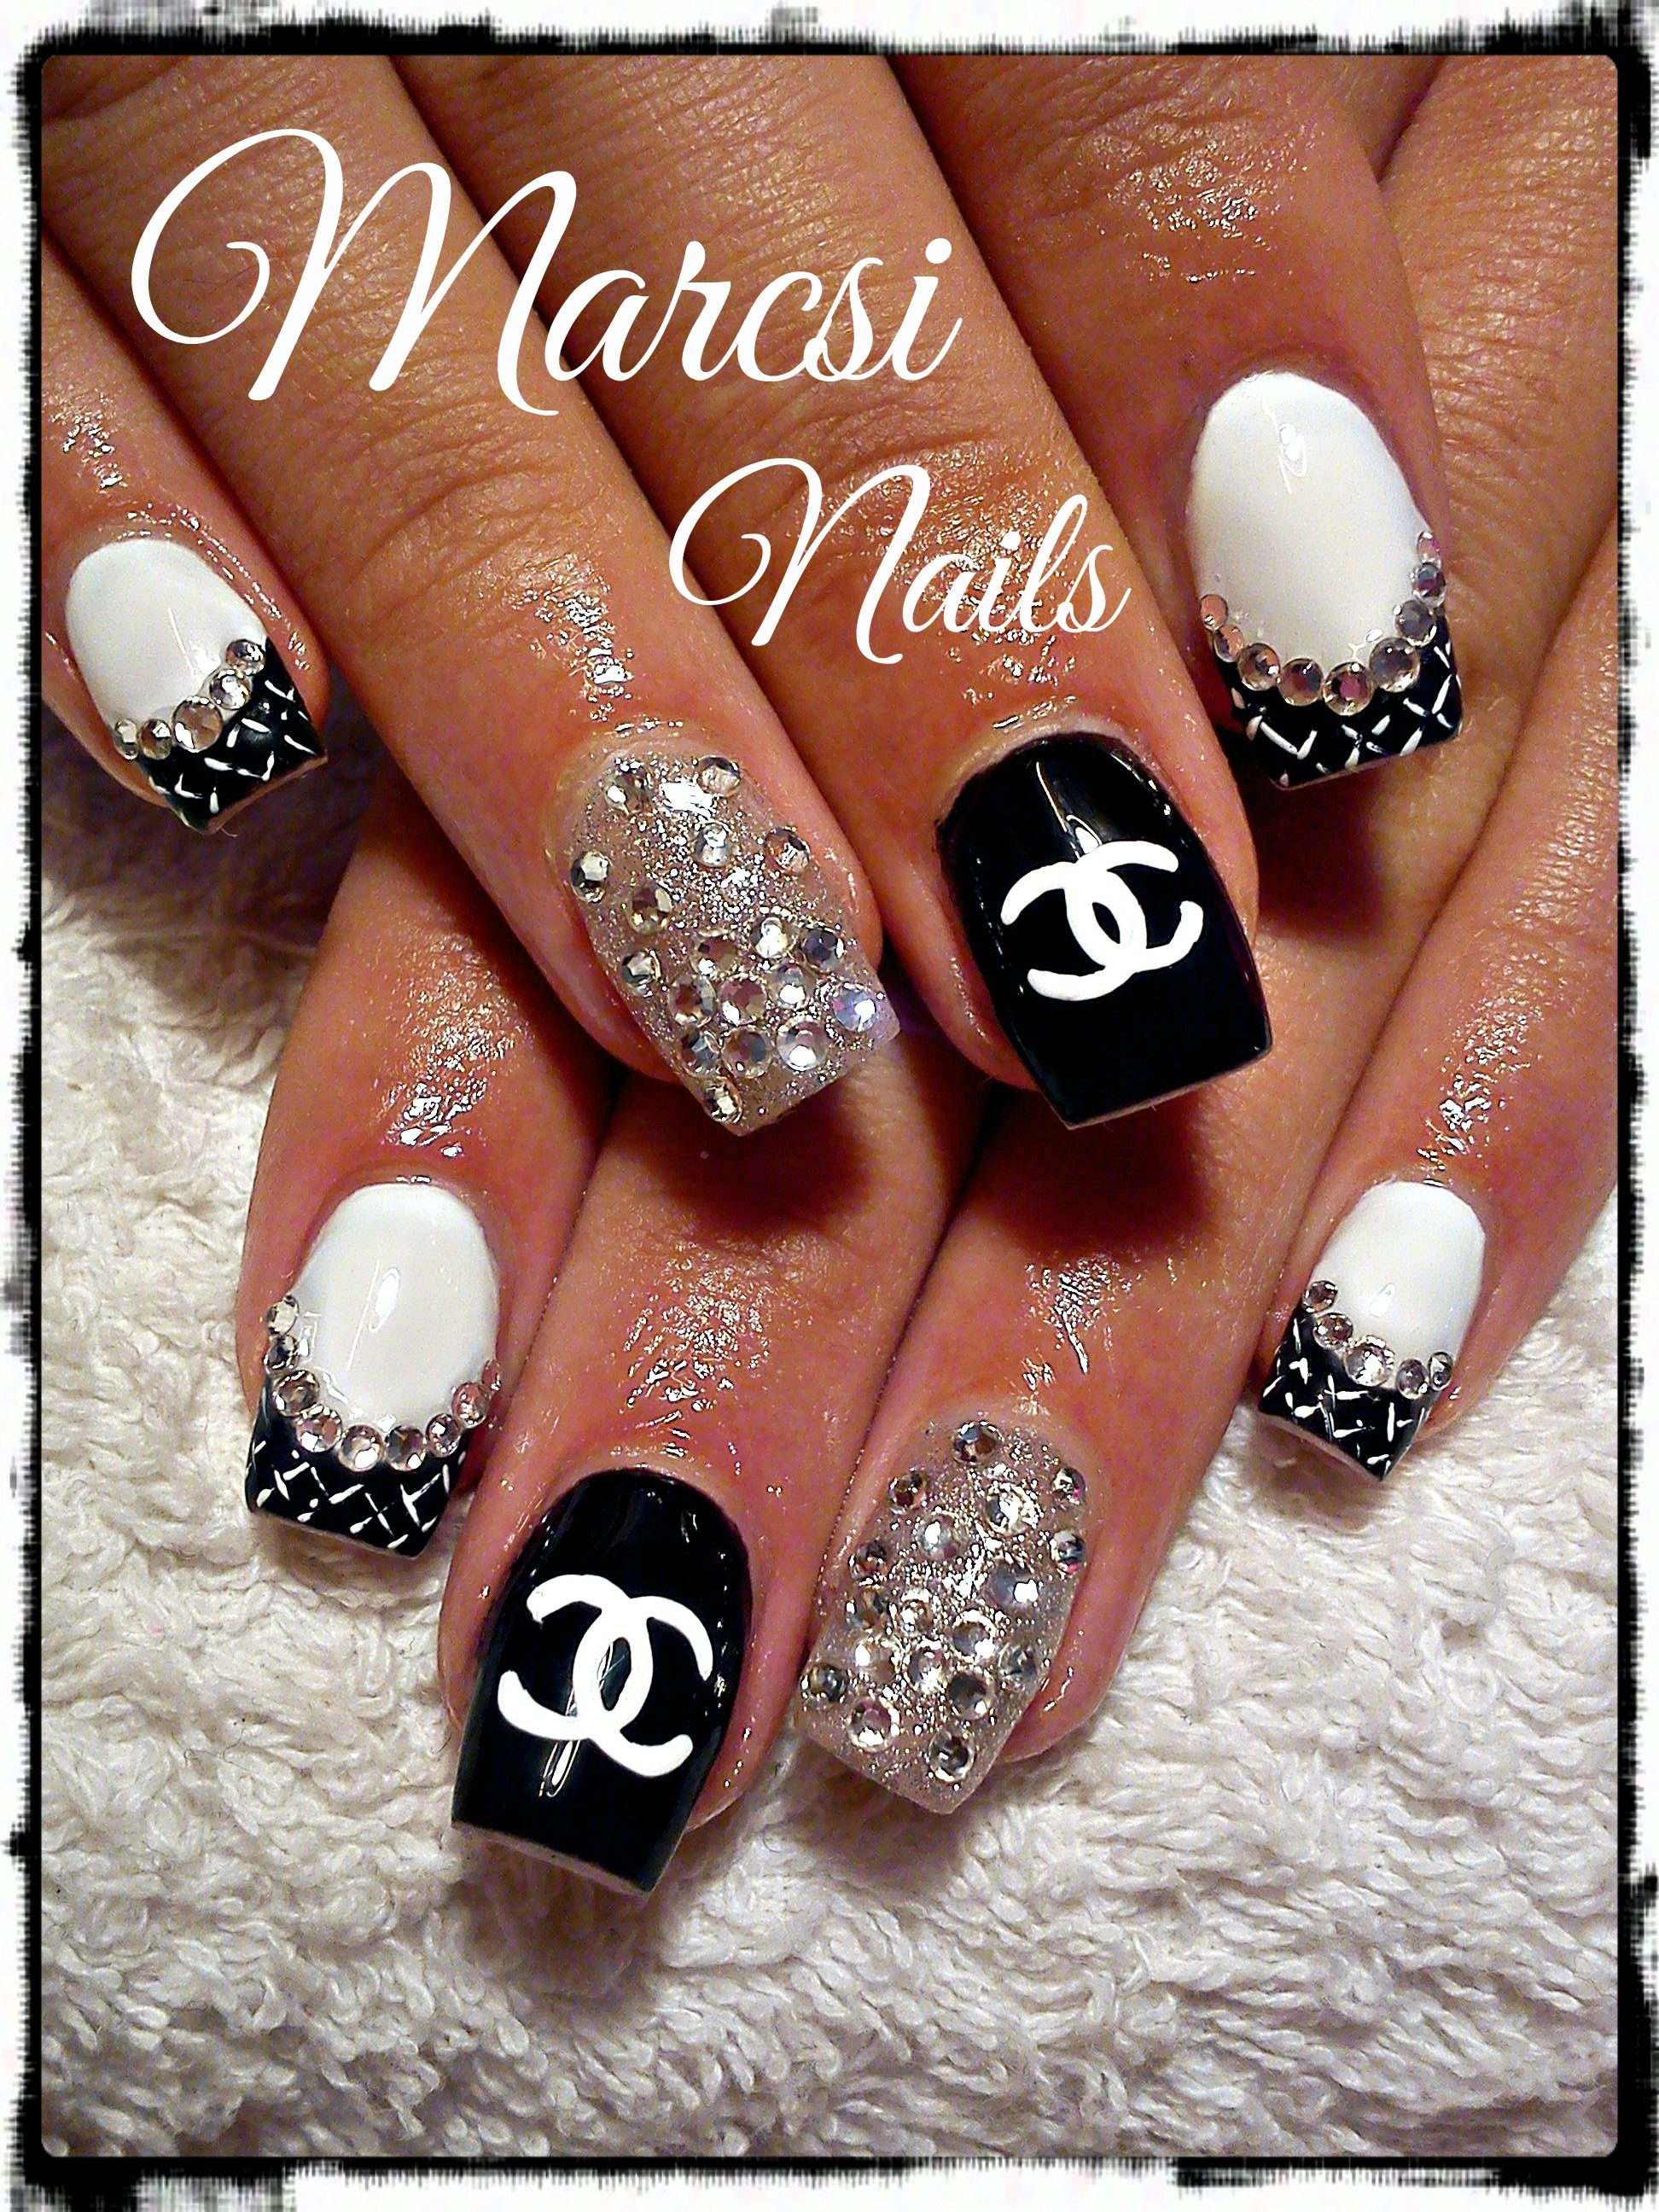 Channel Nail Art Design Black And White Nail Art With Stone The